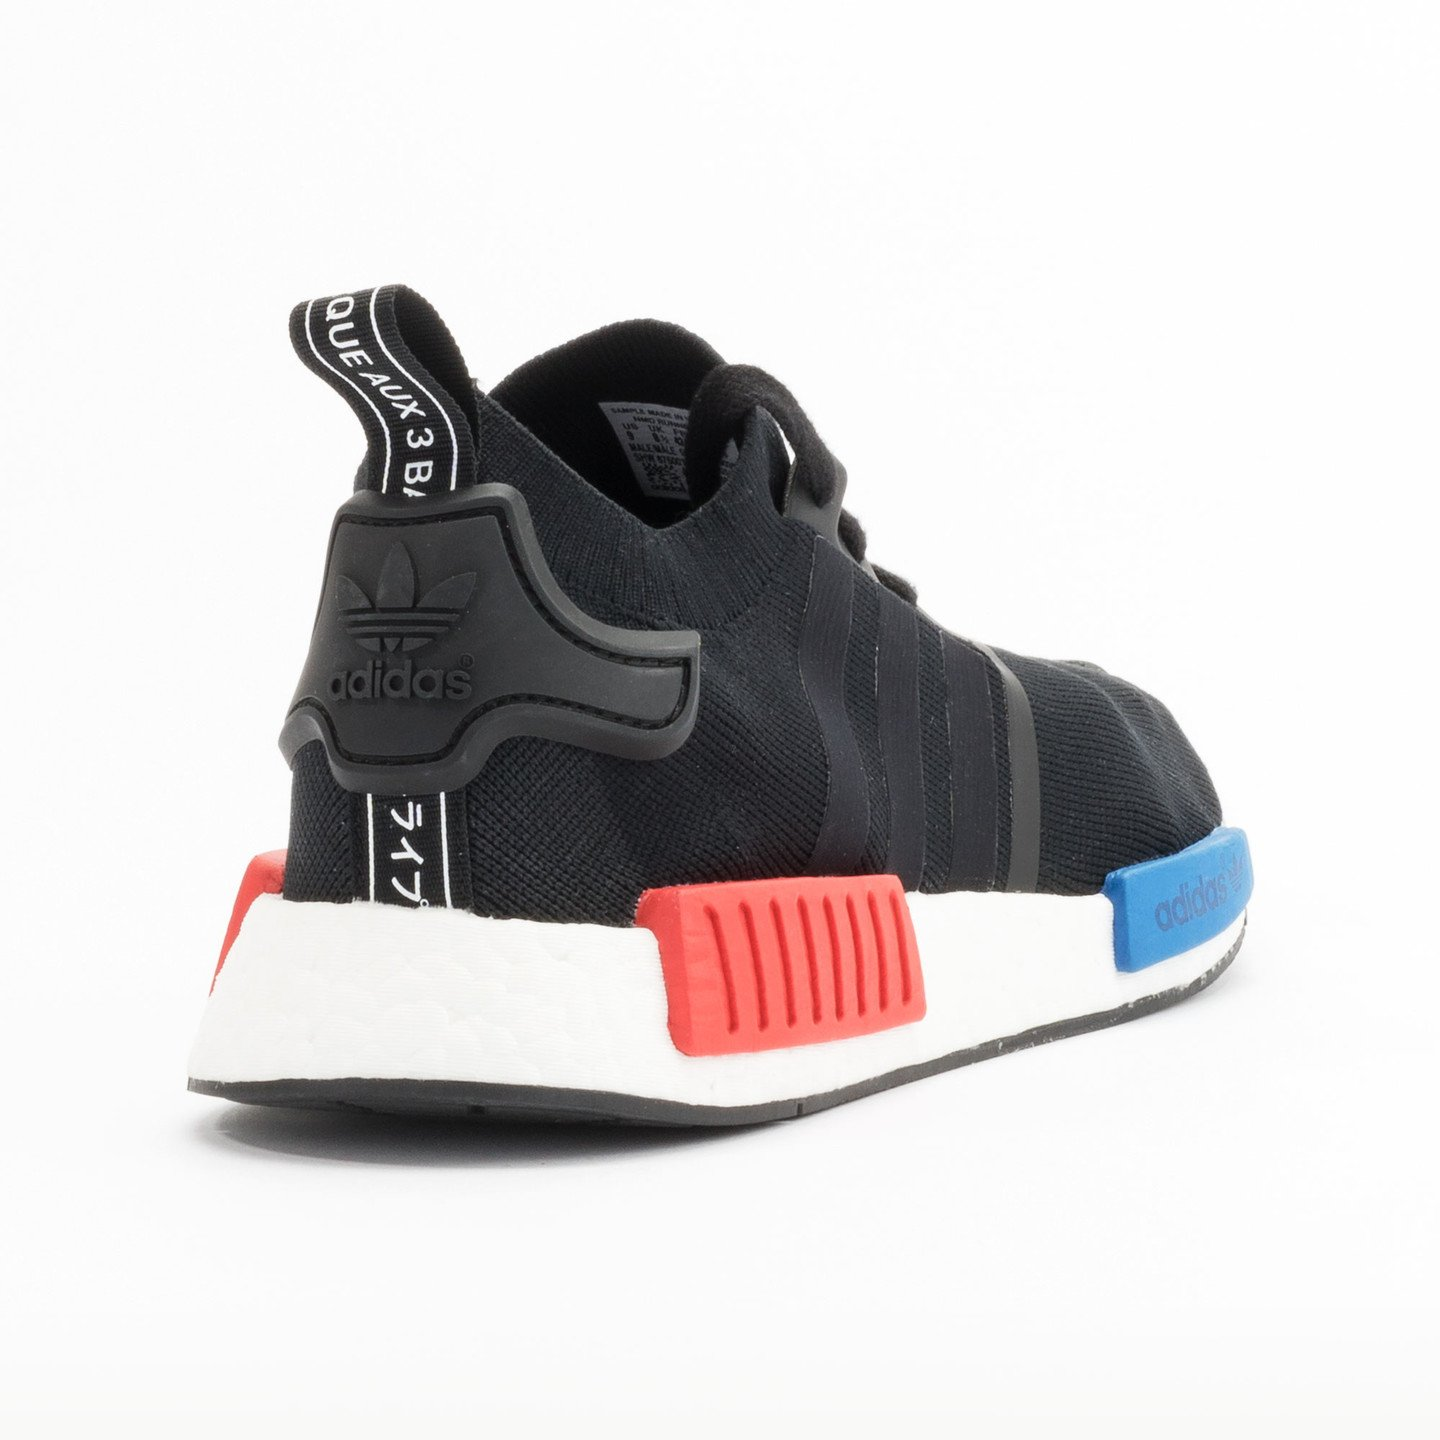 Adidas NMD Runner PK Primeknit Black / Red / Blue / White S79168-38.66